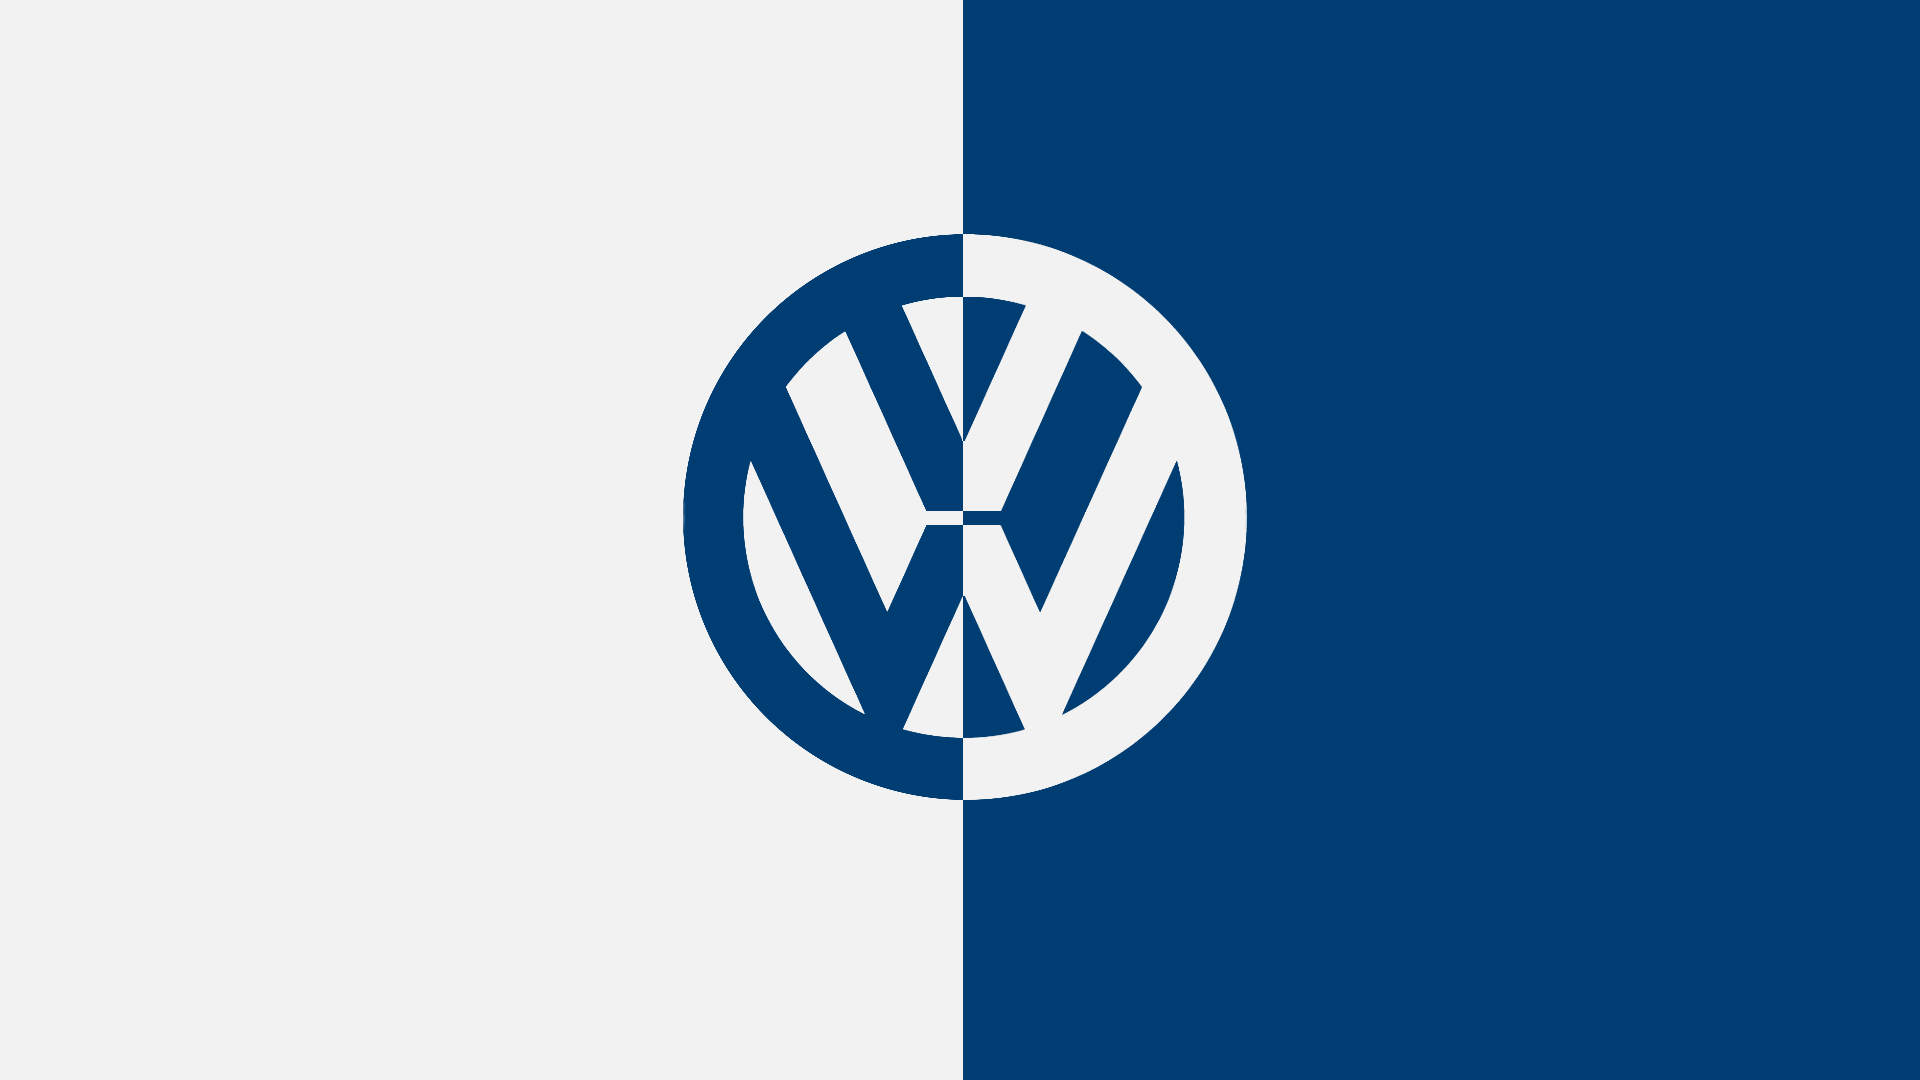 Very minimalistic Volkswagen wallpaper (WIP, need to get rid of some pixels)